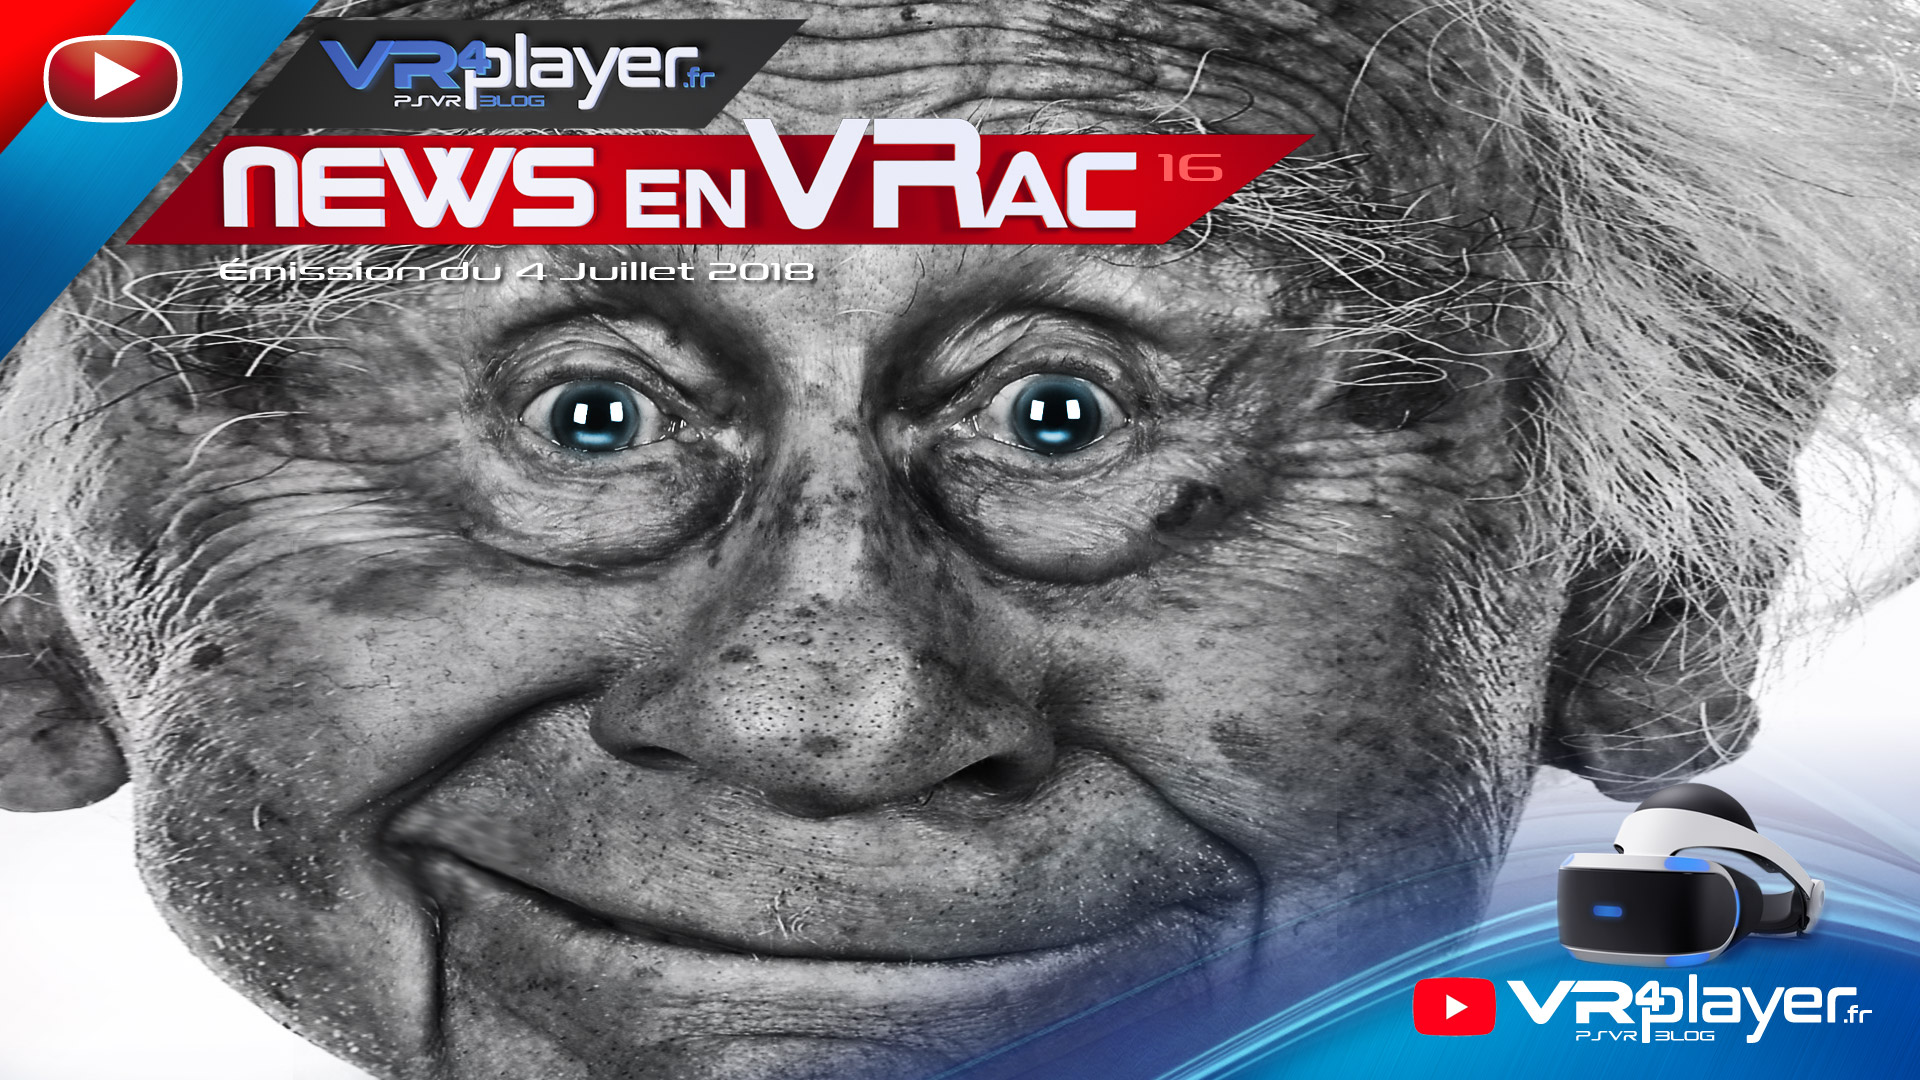 Les News en VRac PlayStation VR Émission 16 VR4Player